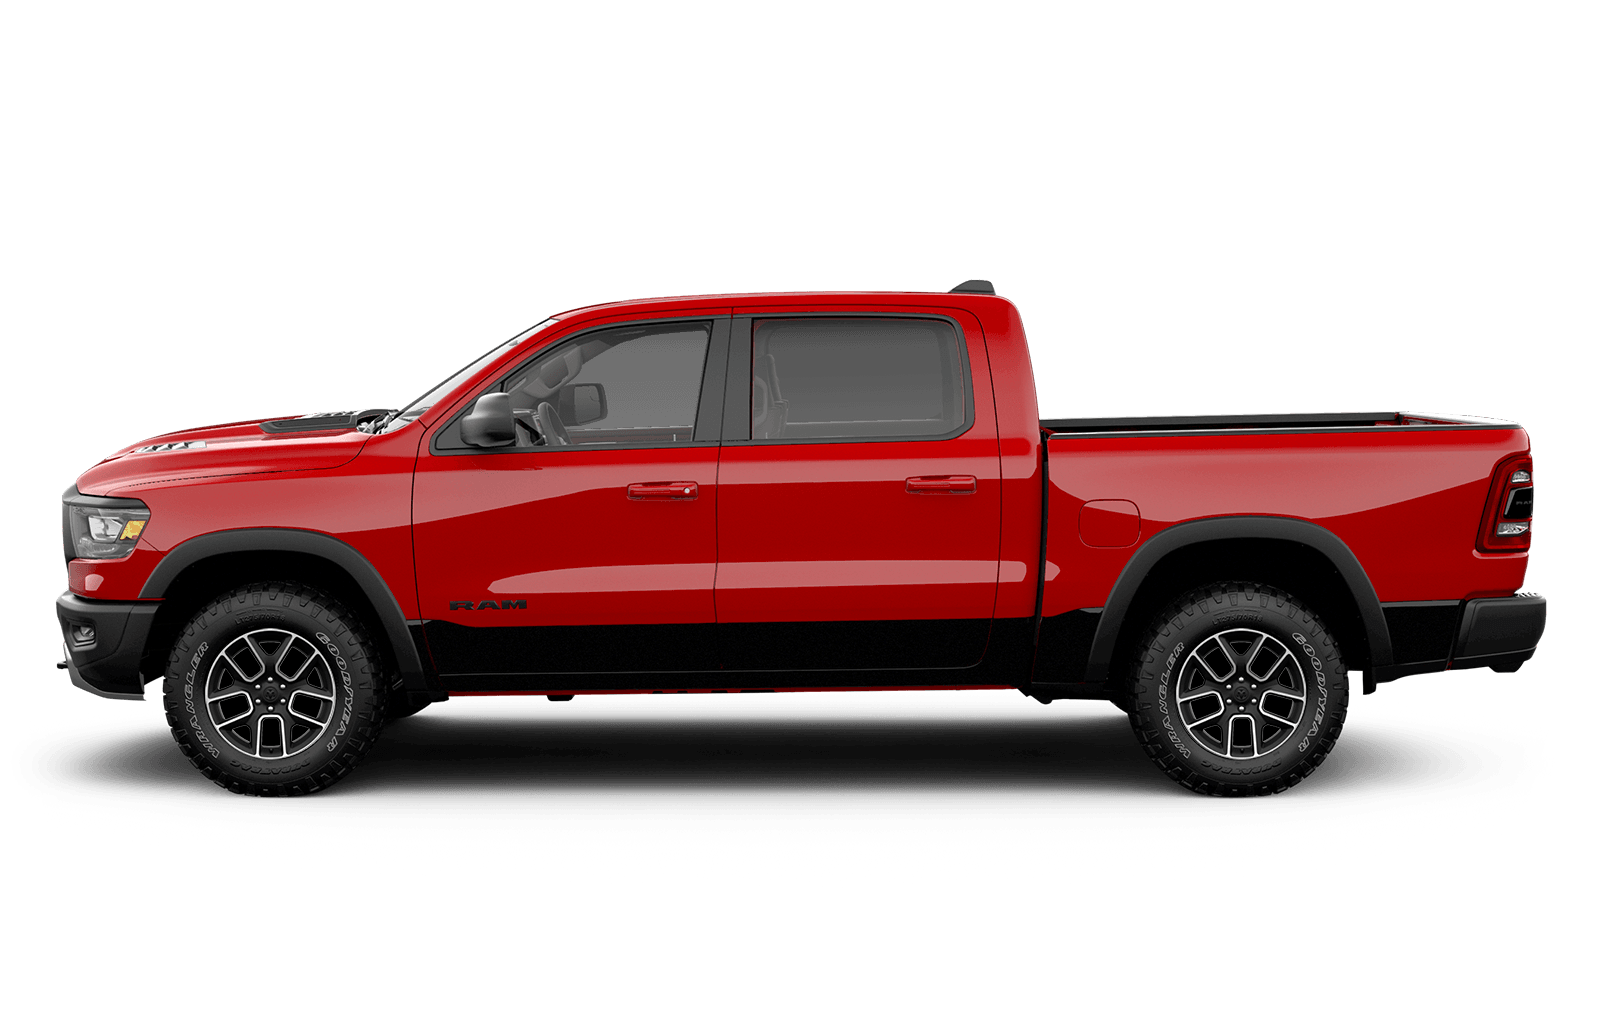 2019 Ram 1500 22inch polished aluminum wheels available on Sport and Laramie